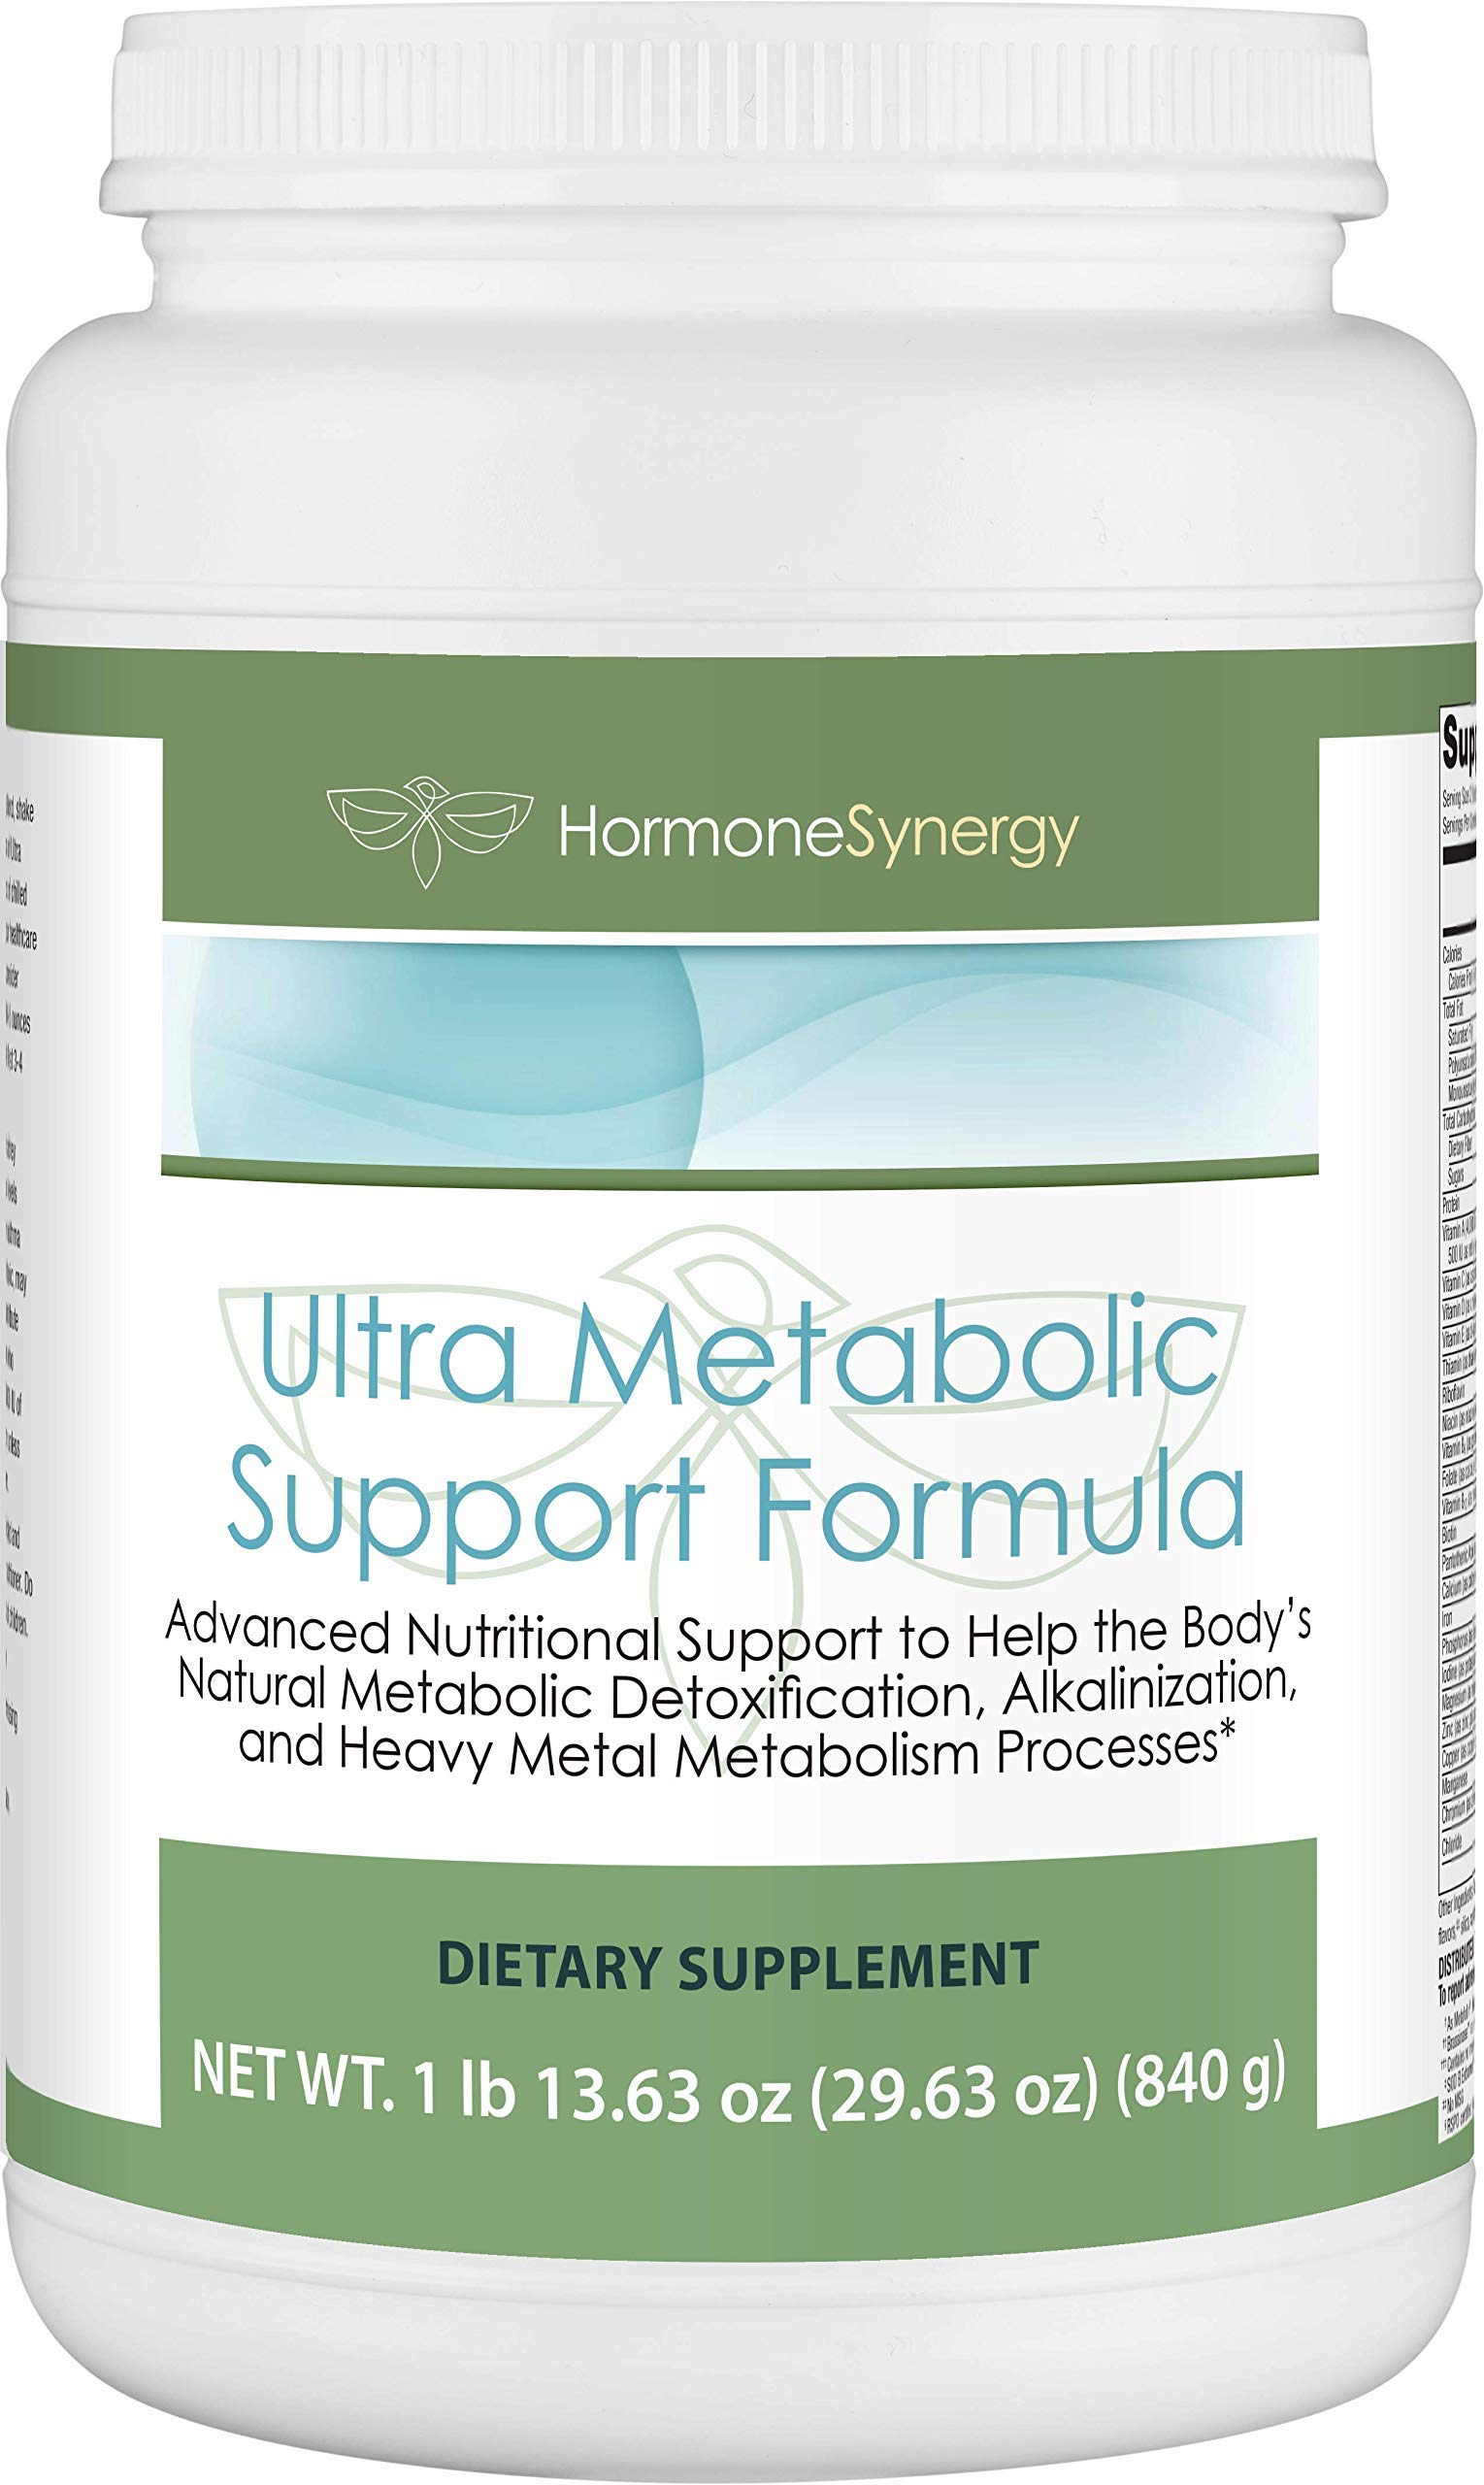 Ultra Metabolic Support Formula | 1 ea. 21 Serving Bottle | Support to Help The Body's Natural metabolic detoxification, alkalinization & Metabolism processes* | Vanilla | Ships Free!